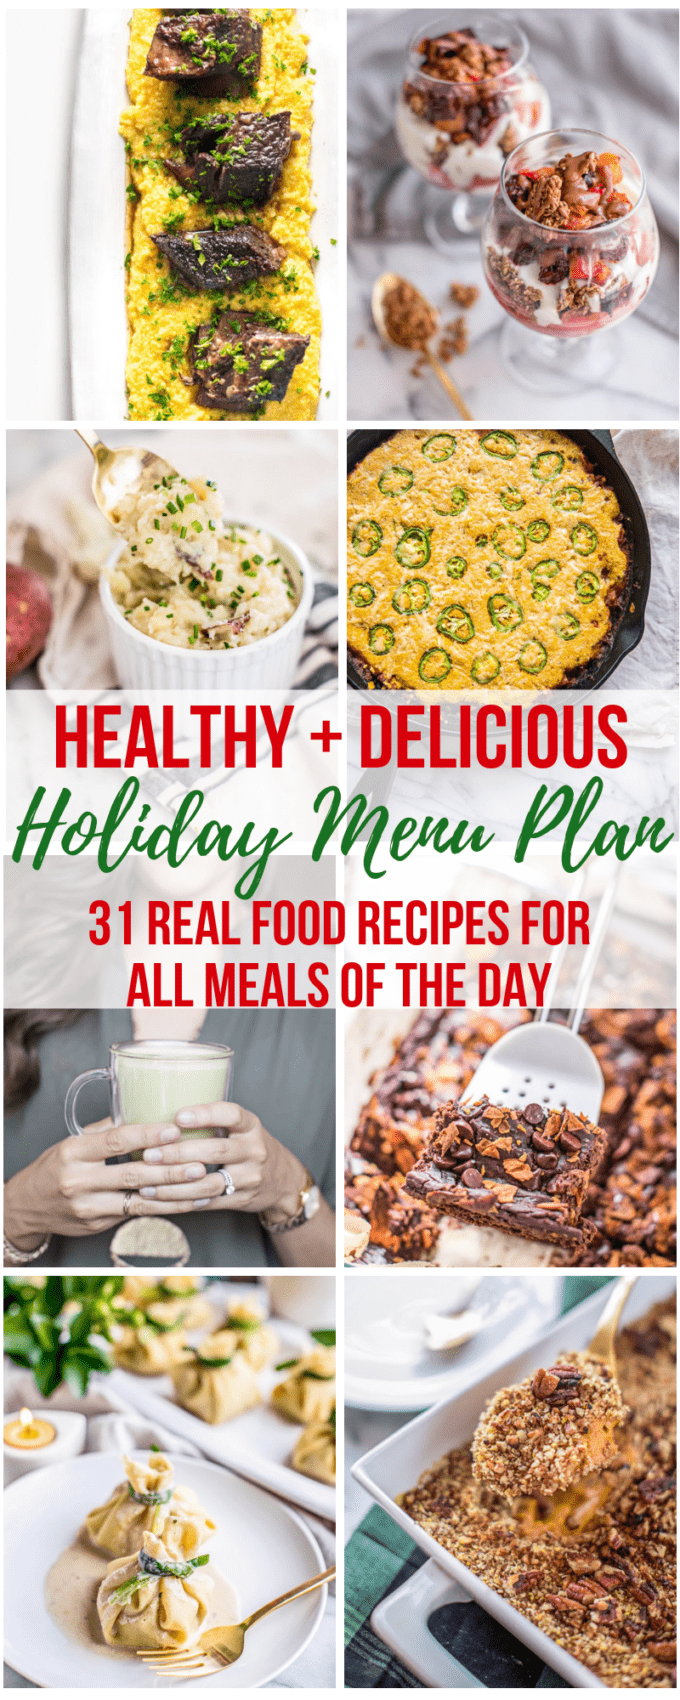 Stressed about what meals to make for your holiday menu? We've got you covered with this collection of 31 real food recipes for the holidays! Complete with festive Breakfasts, Smoothies, Lattes, Appetizers, Sides, Mains and Desserts, your holiday menu is totally taken care of, so you can enjoy the season without sacrifice. Eating well for the holidays just got a whole lot easier!